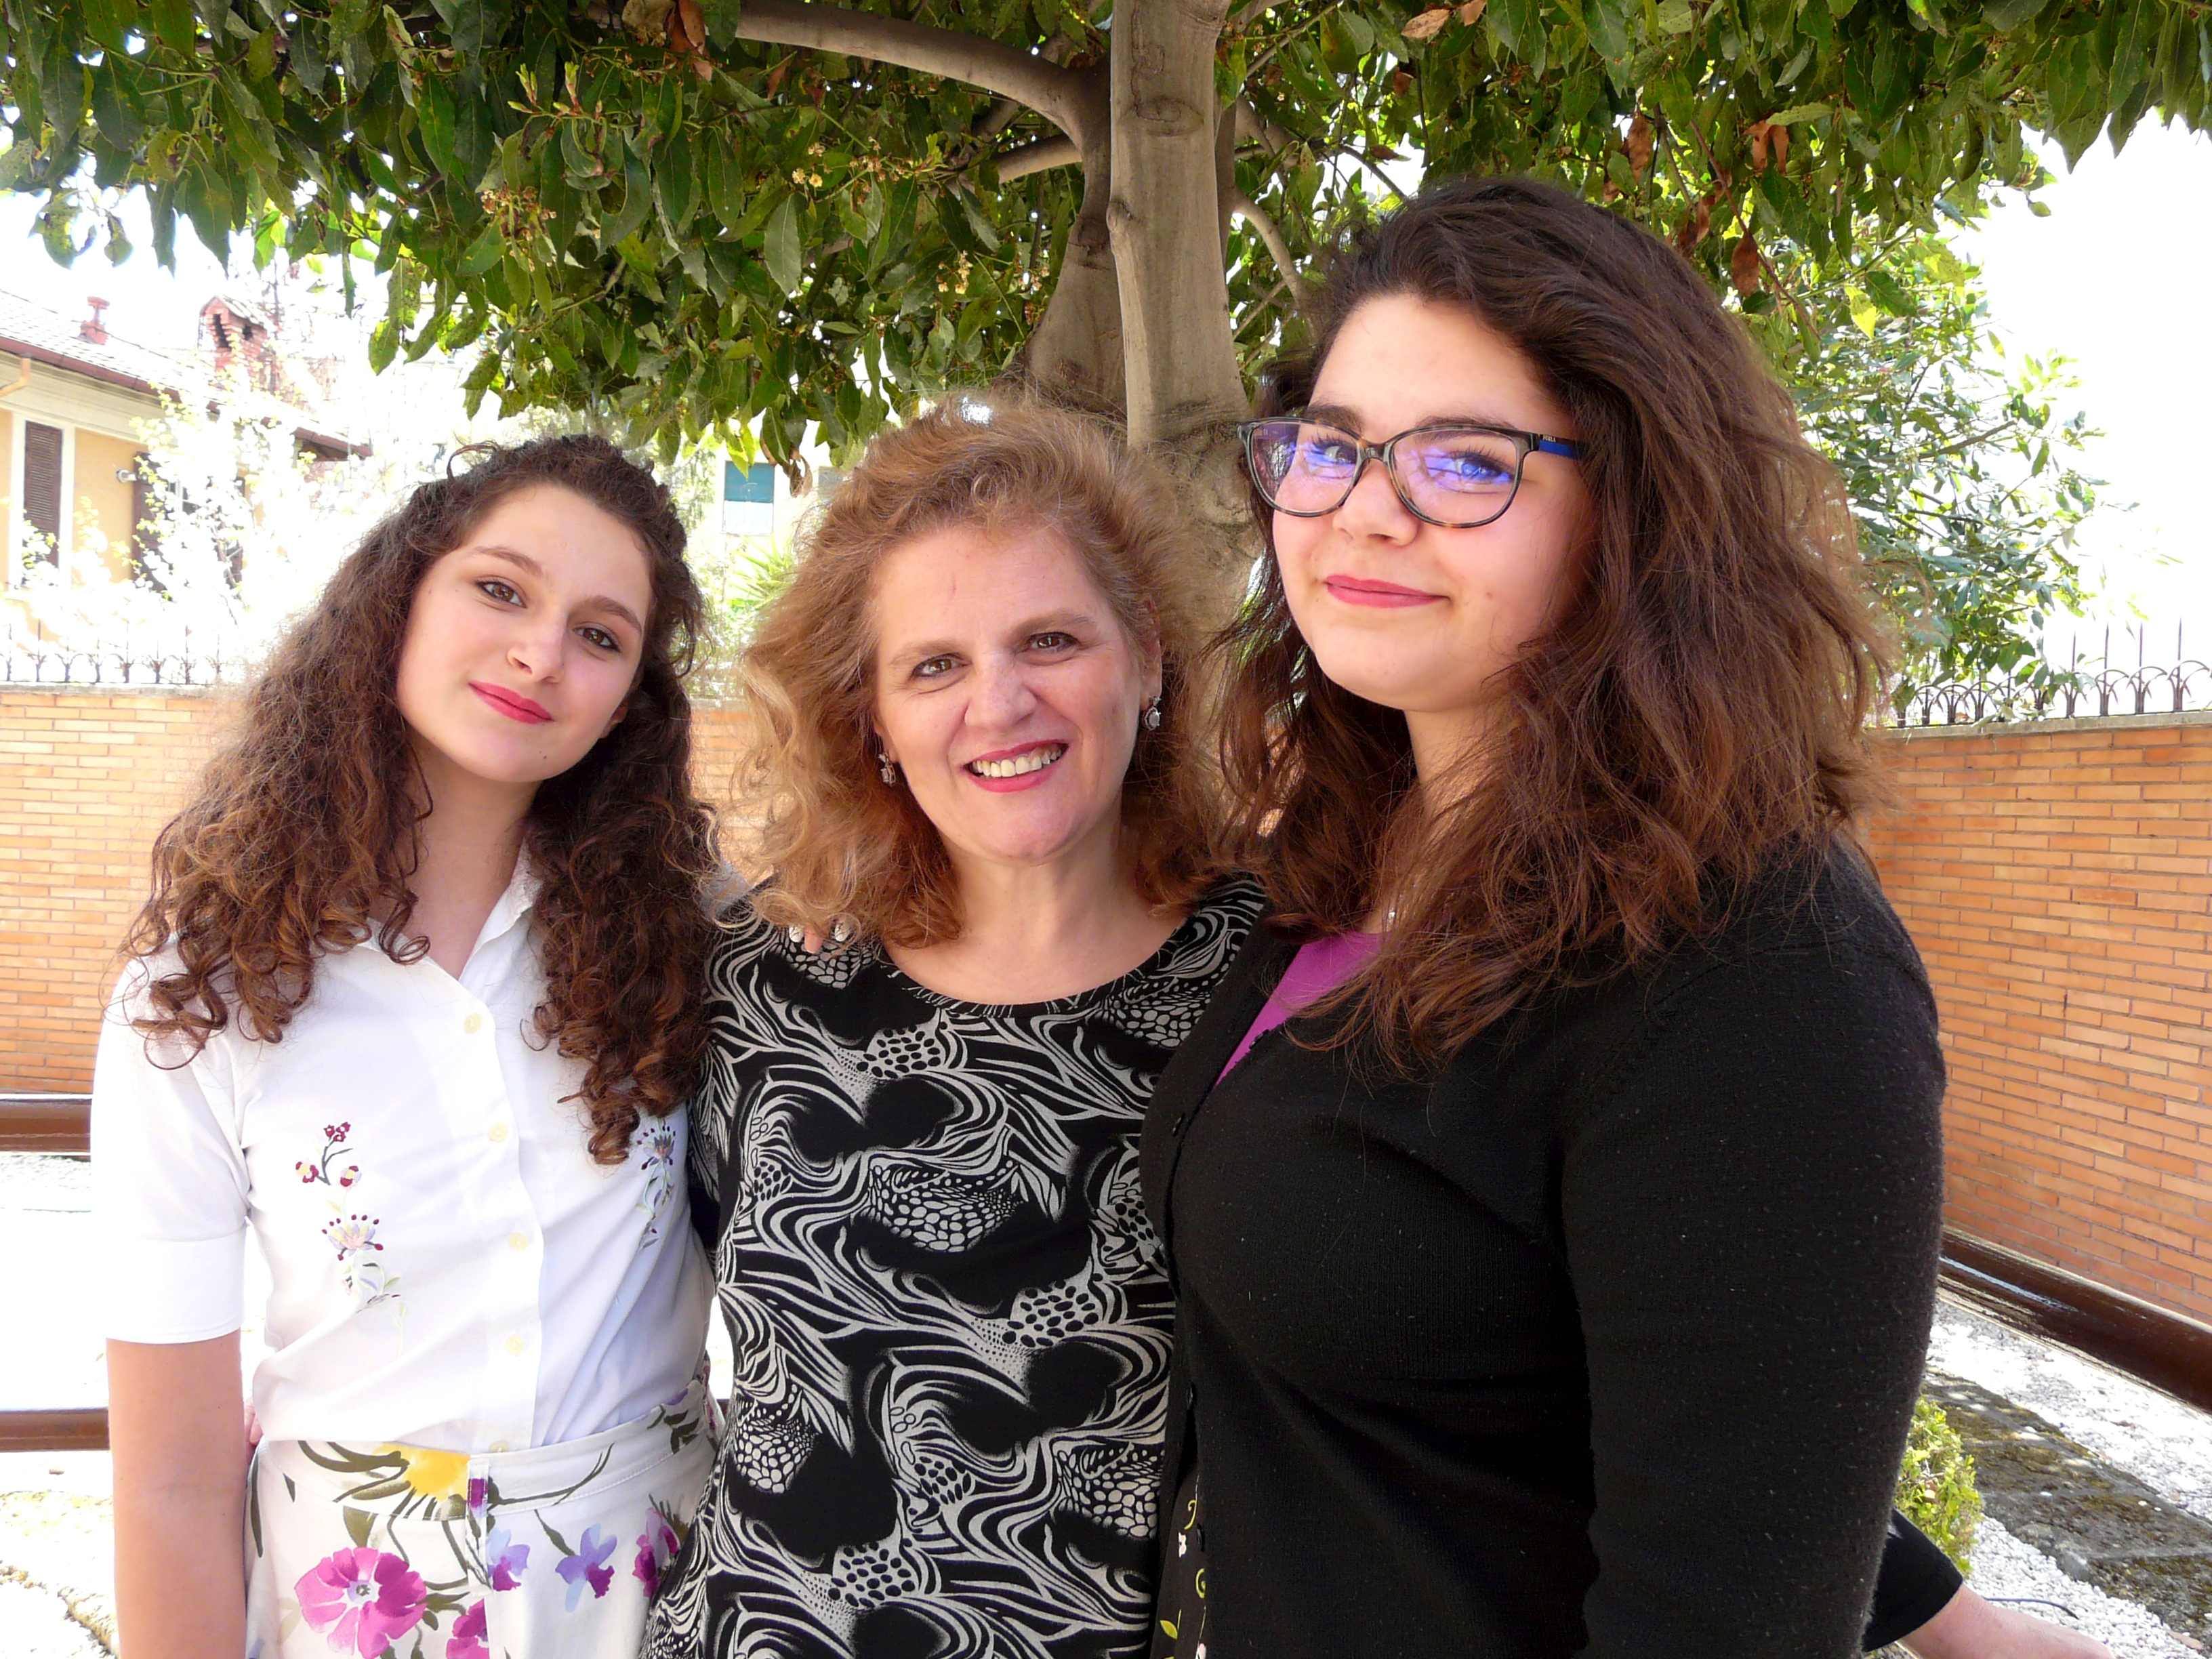 Daughter-in-law Alba Vardeu is flanked by daughters Myriam, 13, left, and Ylenia, 17, both young women in the Rome 2nd Ward.